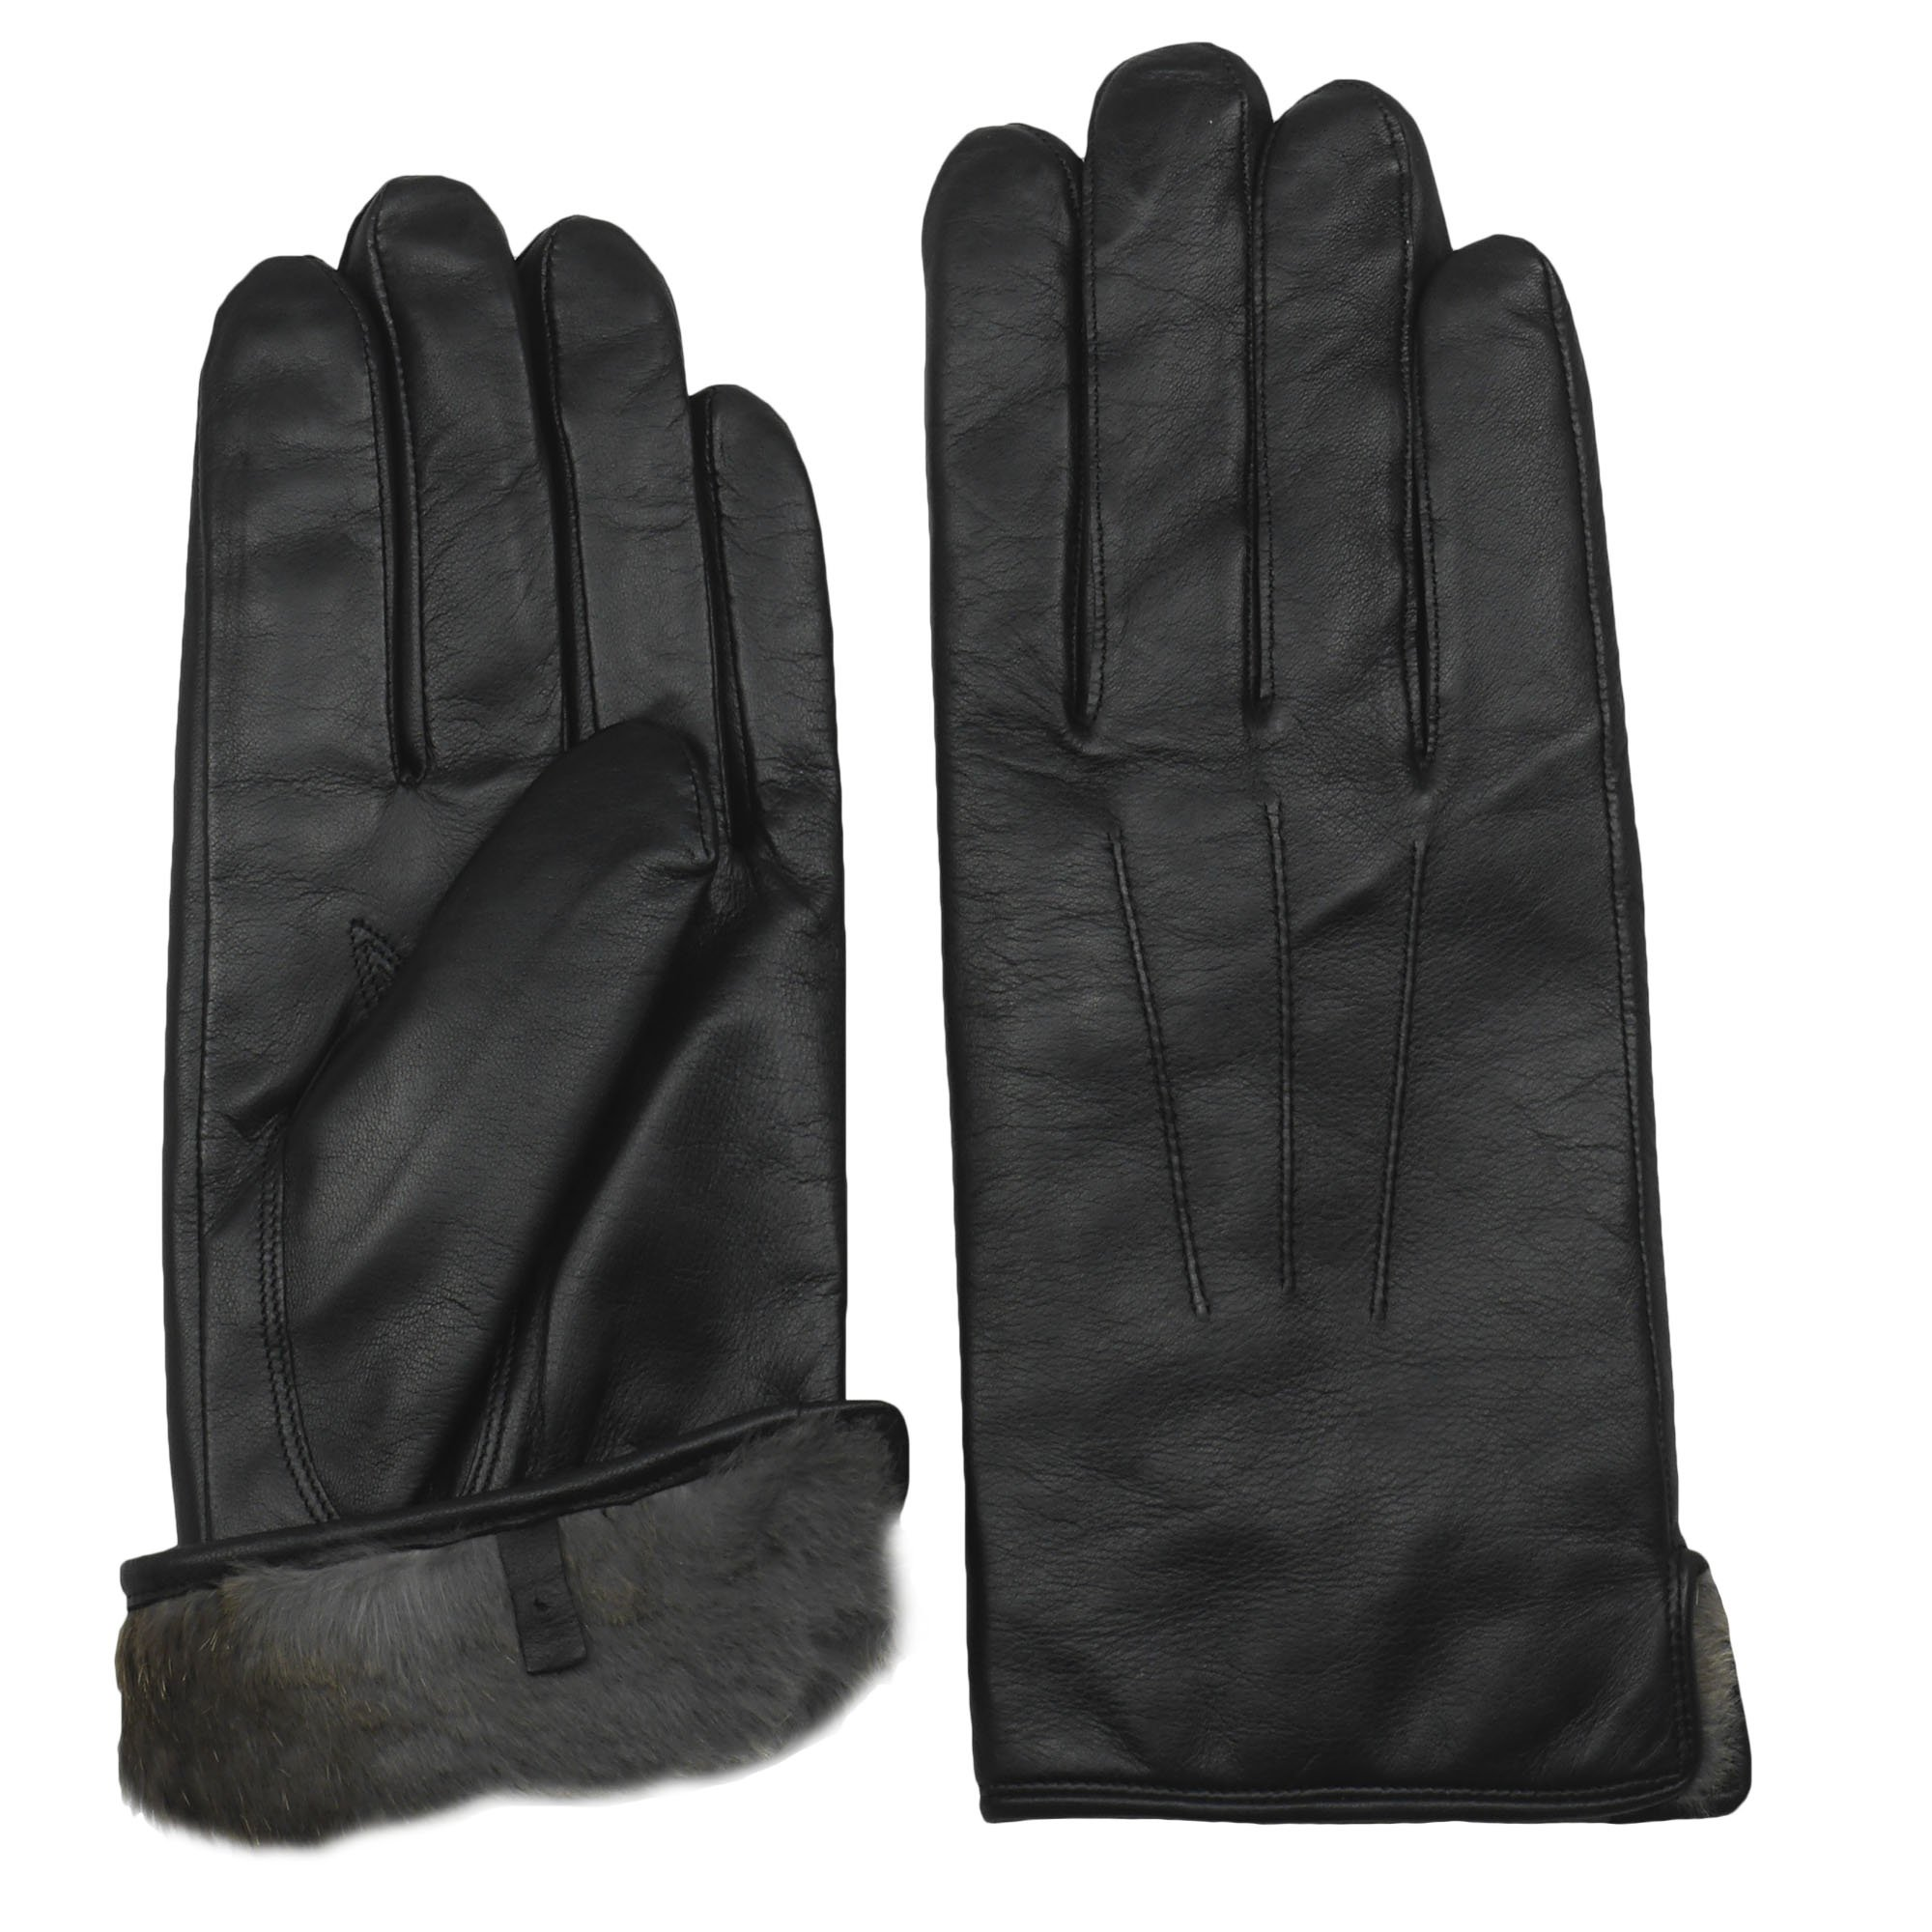 Men's Rabbit Fur Lined Sheepskin Leather Gloves by Arosa | Butter Soft Luxurious by AROSA (Image #1)